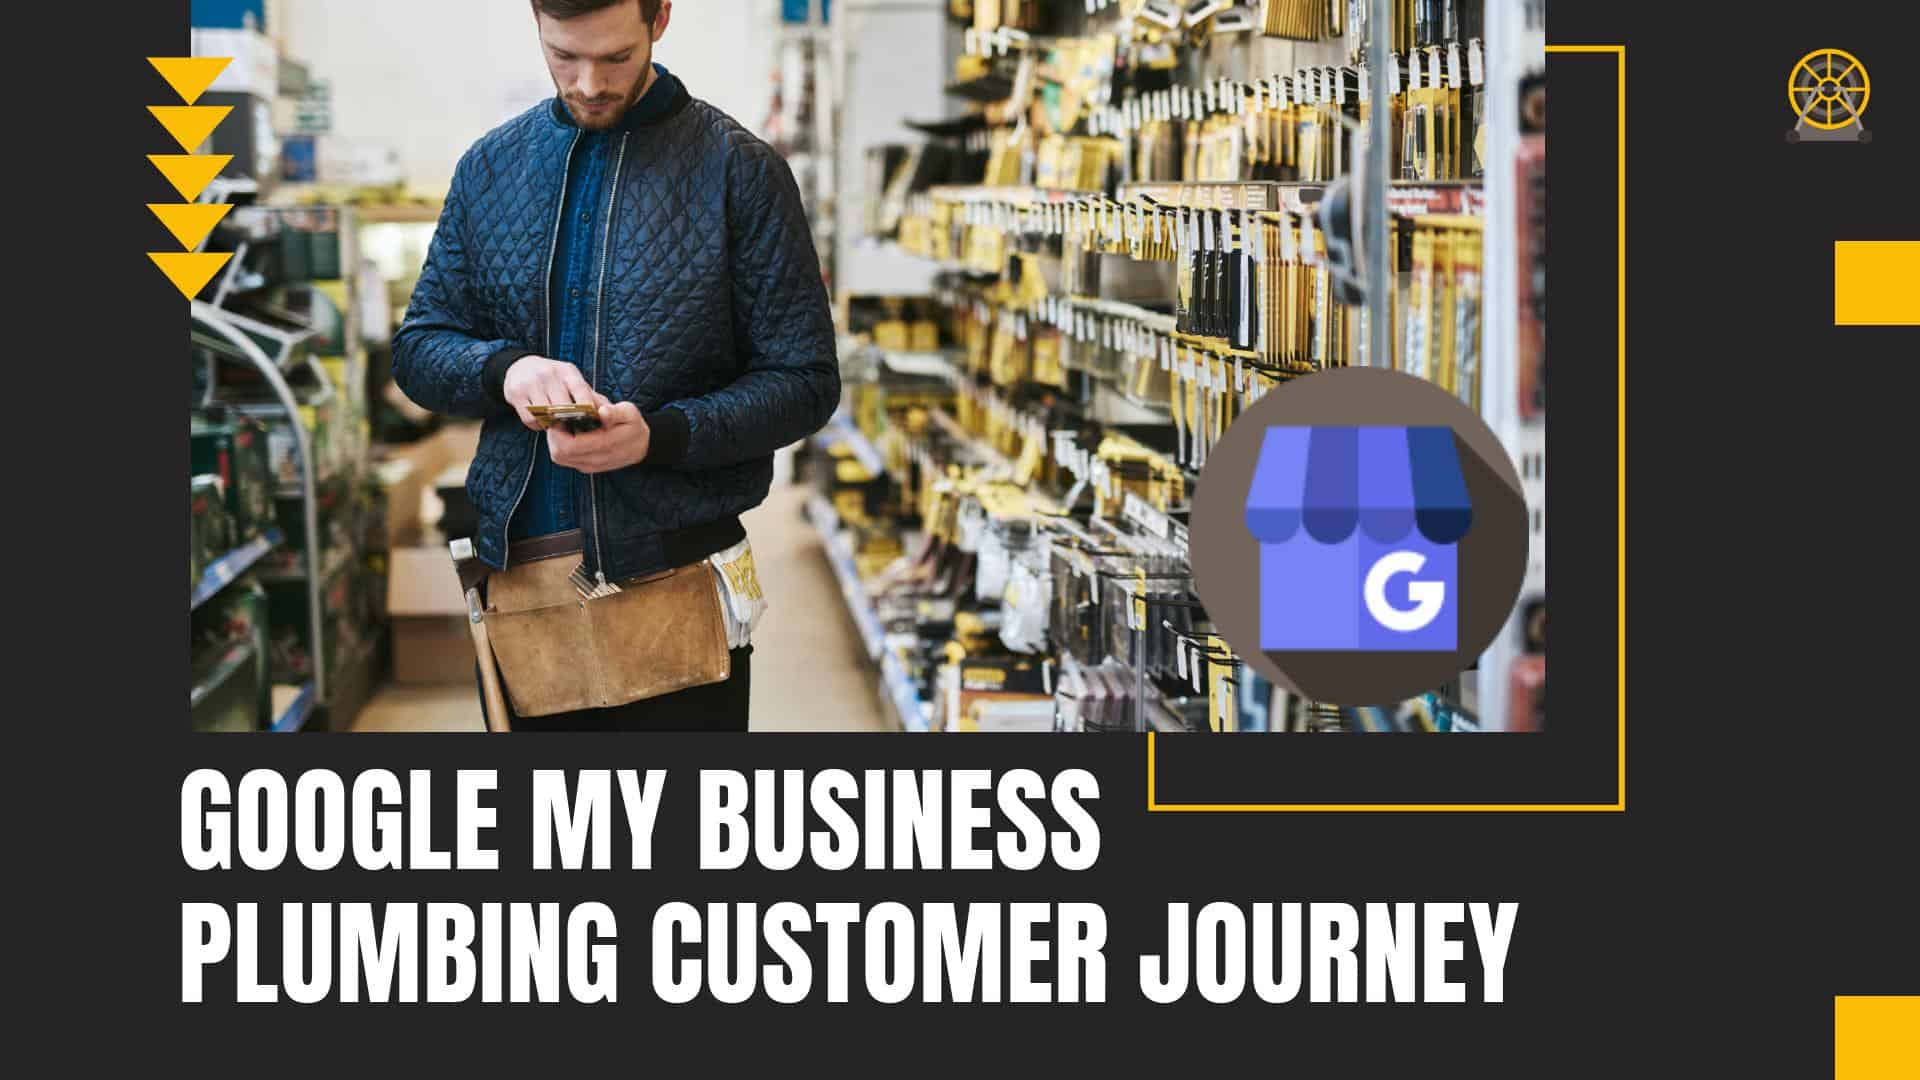 Understand the journey a customer takes when choosing your plumbing company over the competition on Google My Business.